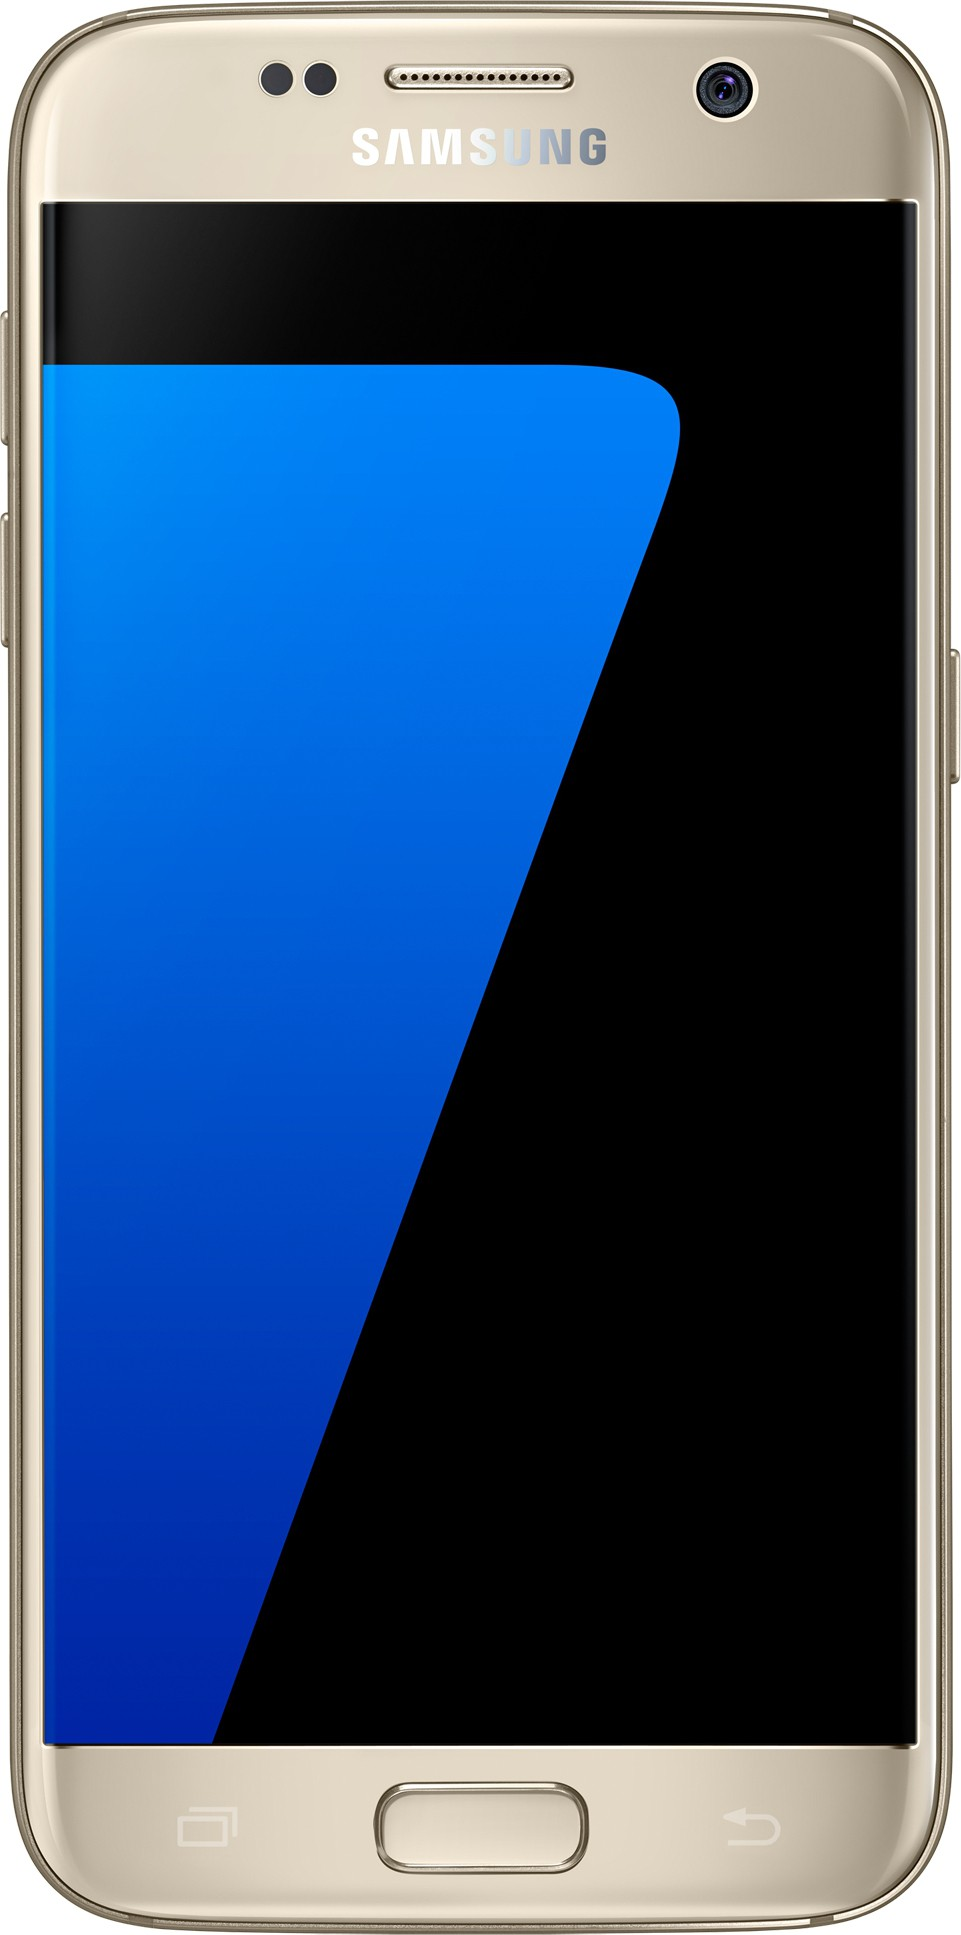 Deals - Chennai - Samsung Galaxy S7 <br> Now ₹43,400<br> Category - mobiles_and_accessories<br> Business - Flipkart.com